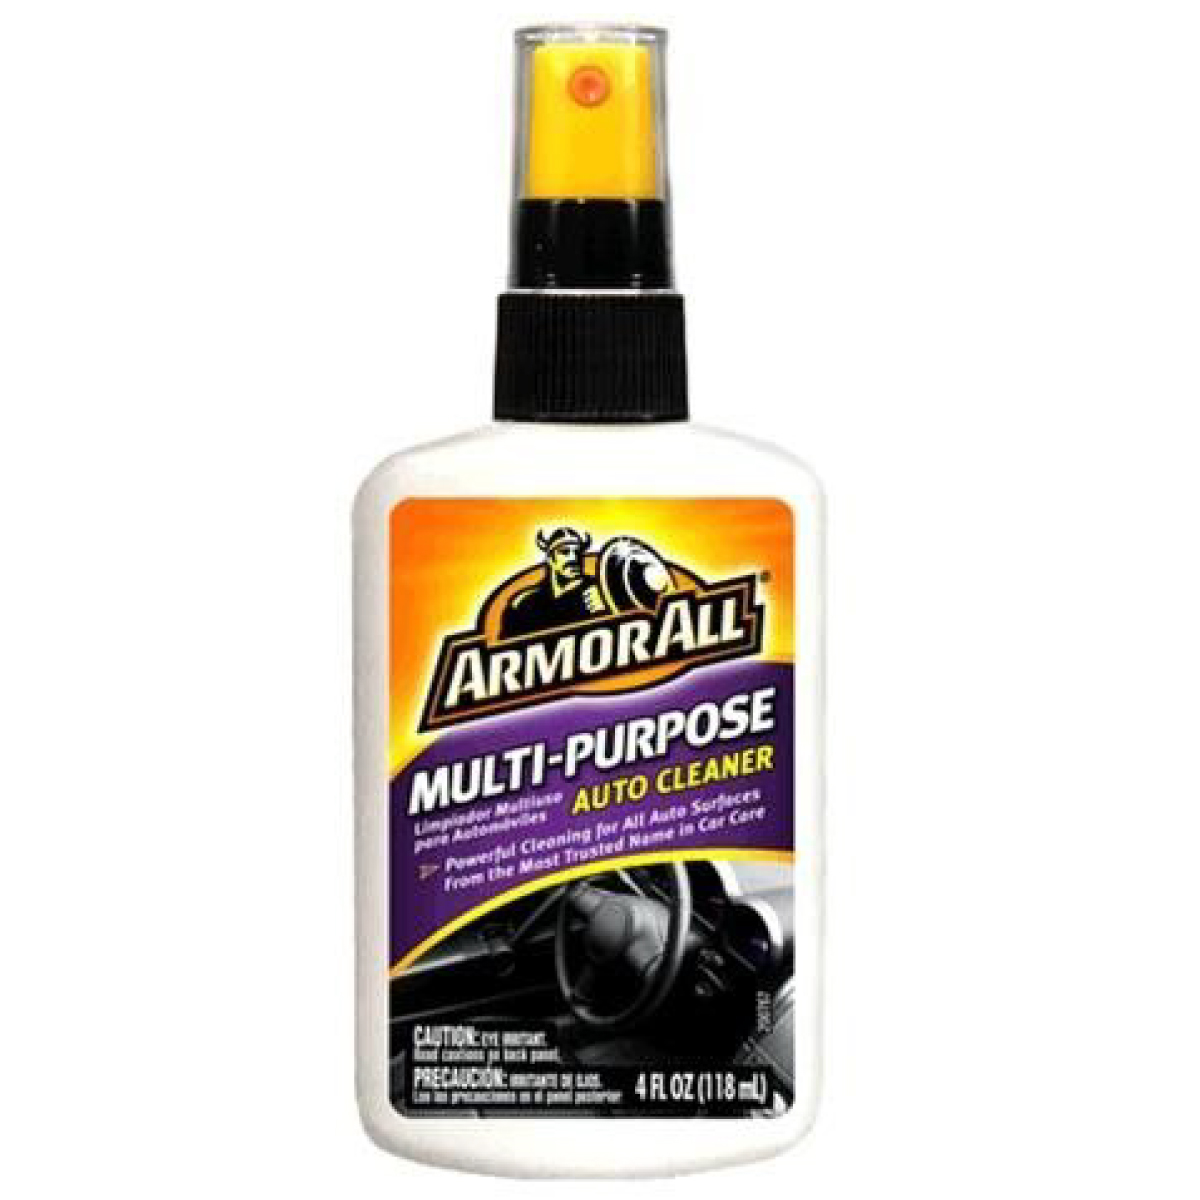 Multi-Purpose Auto Cleaner Armor All